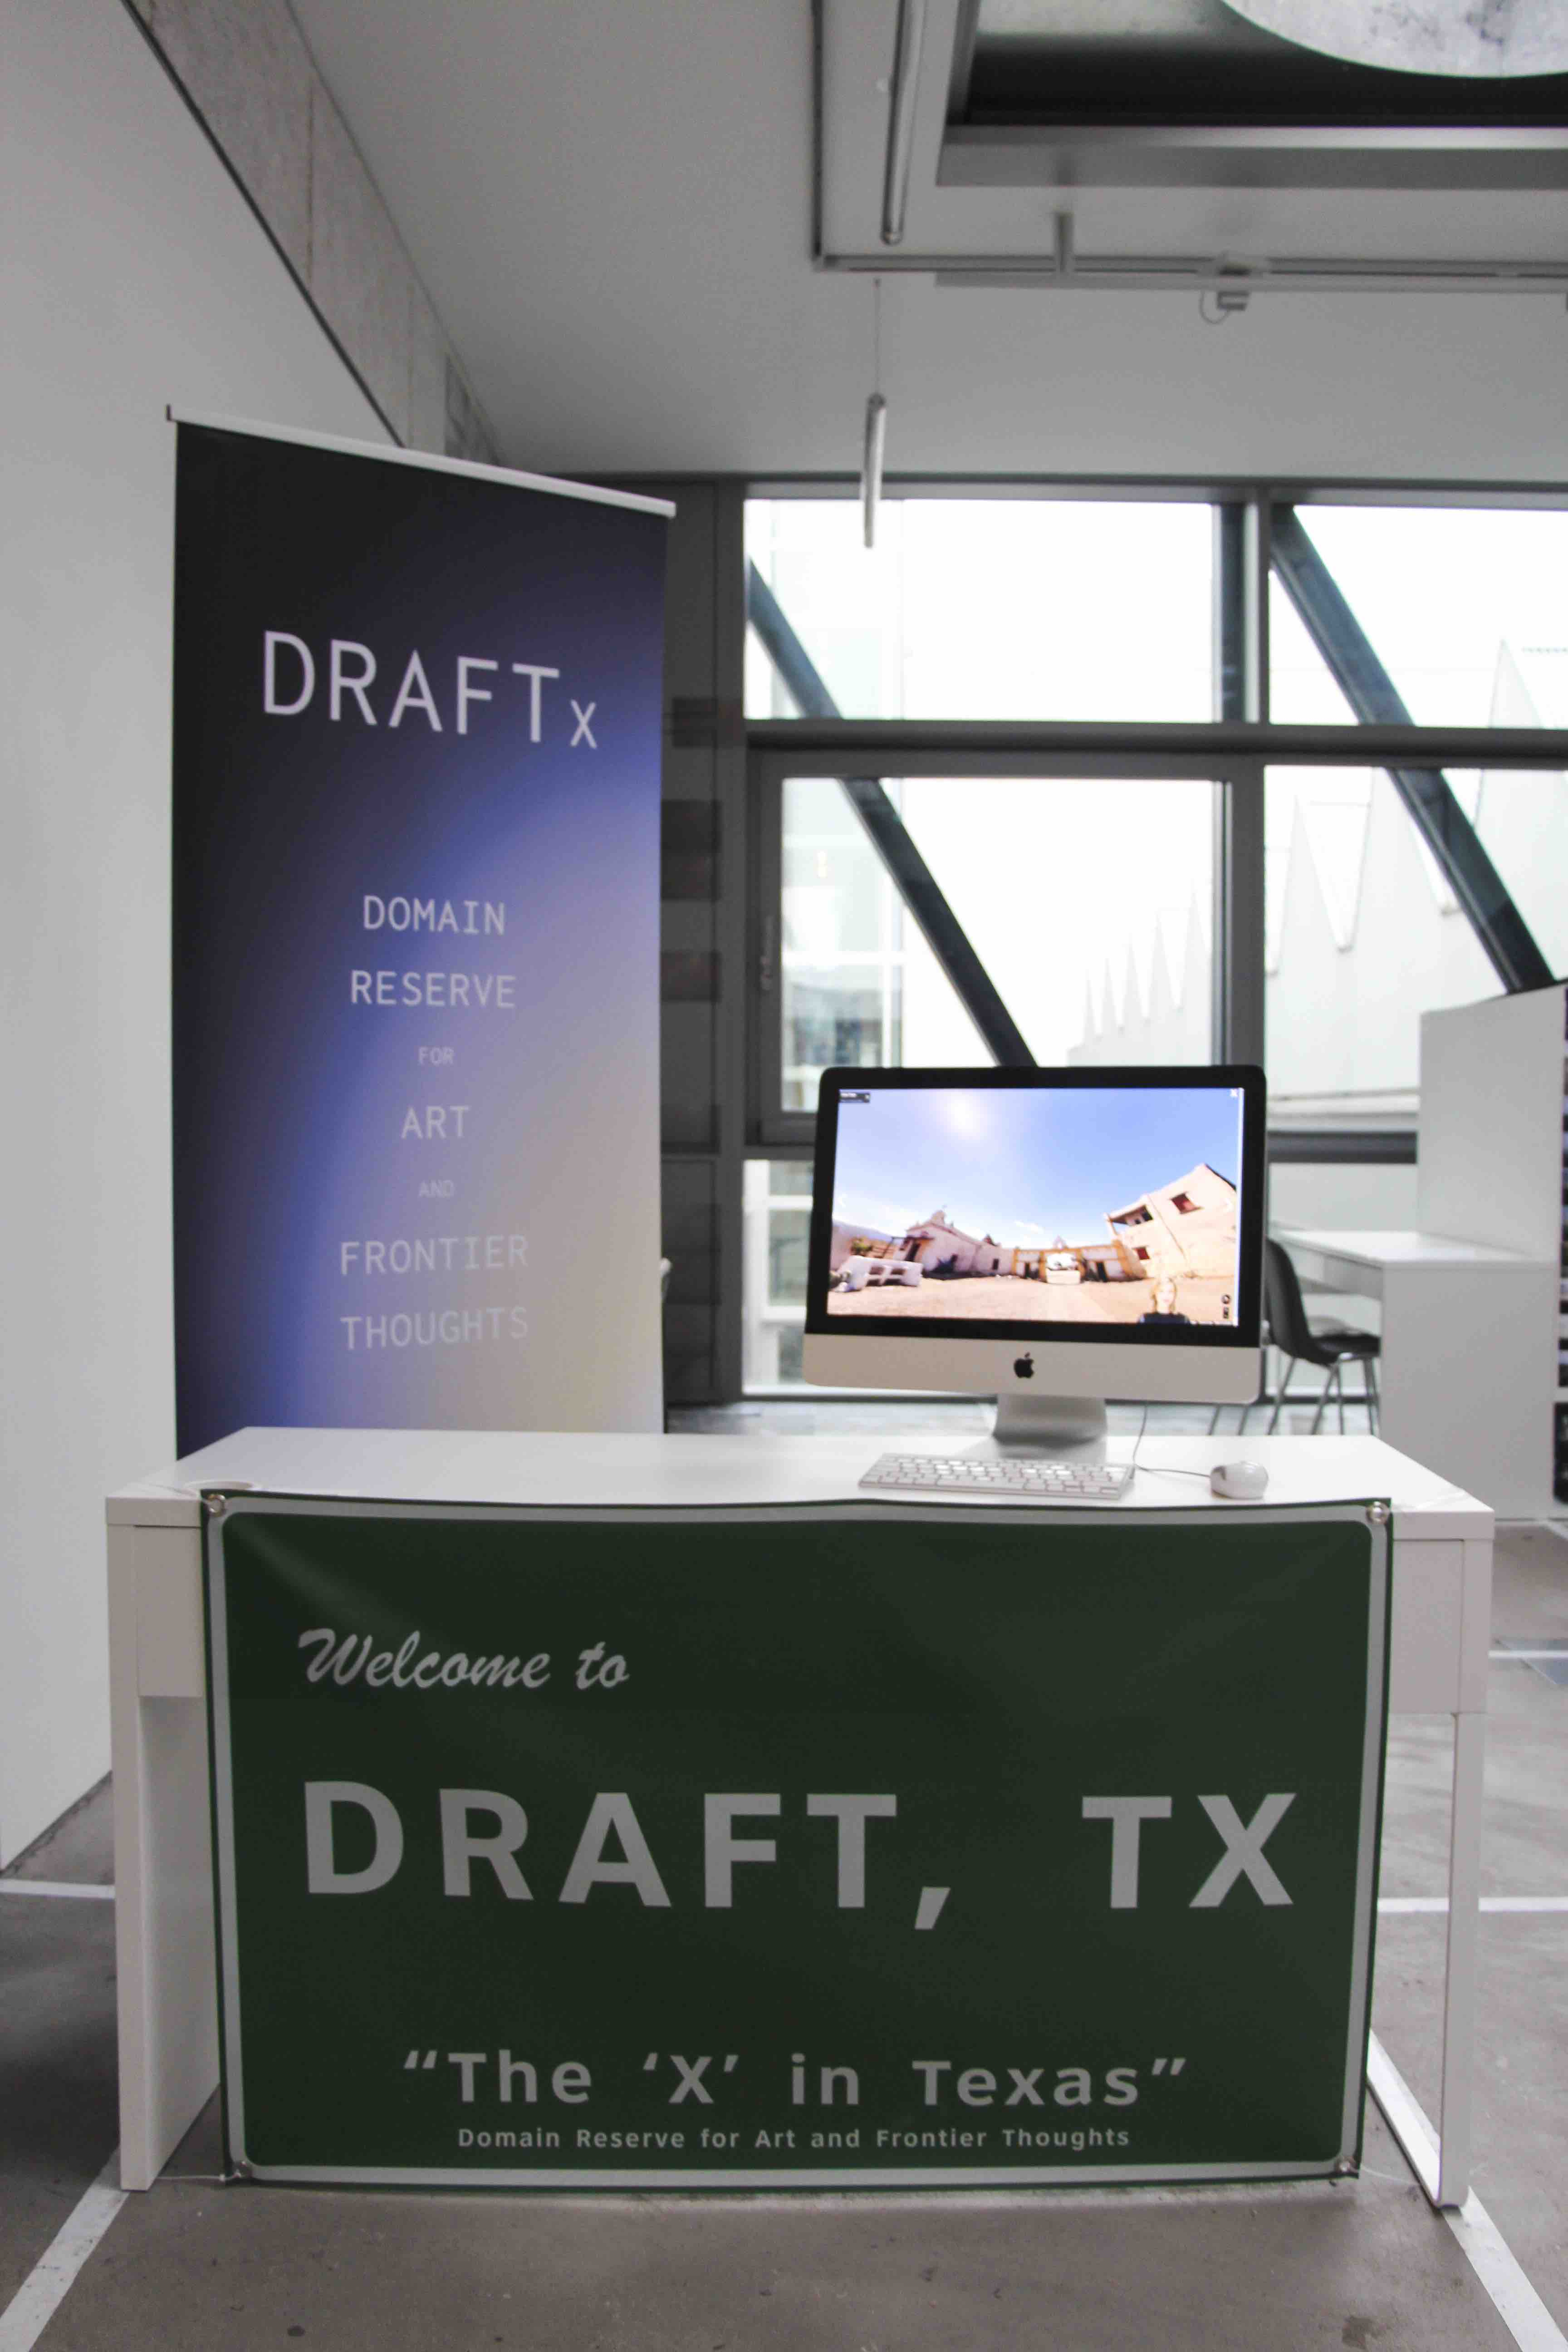 The DRAFTx [beta] booth in London, 2017